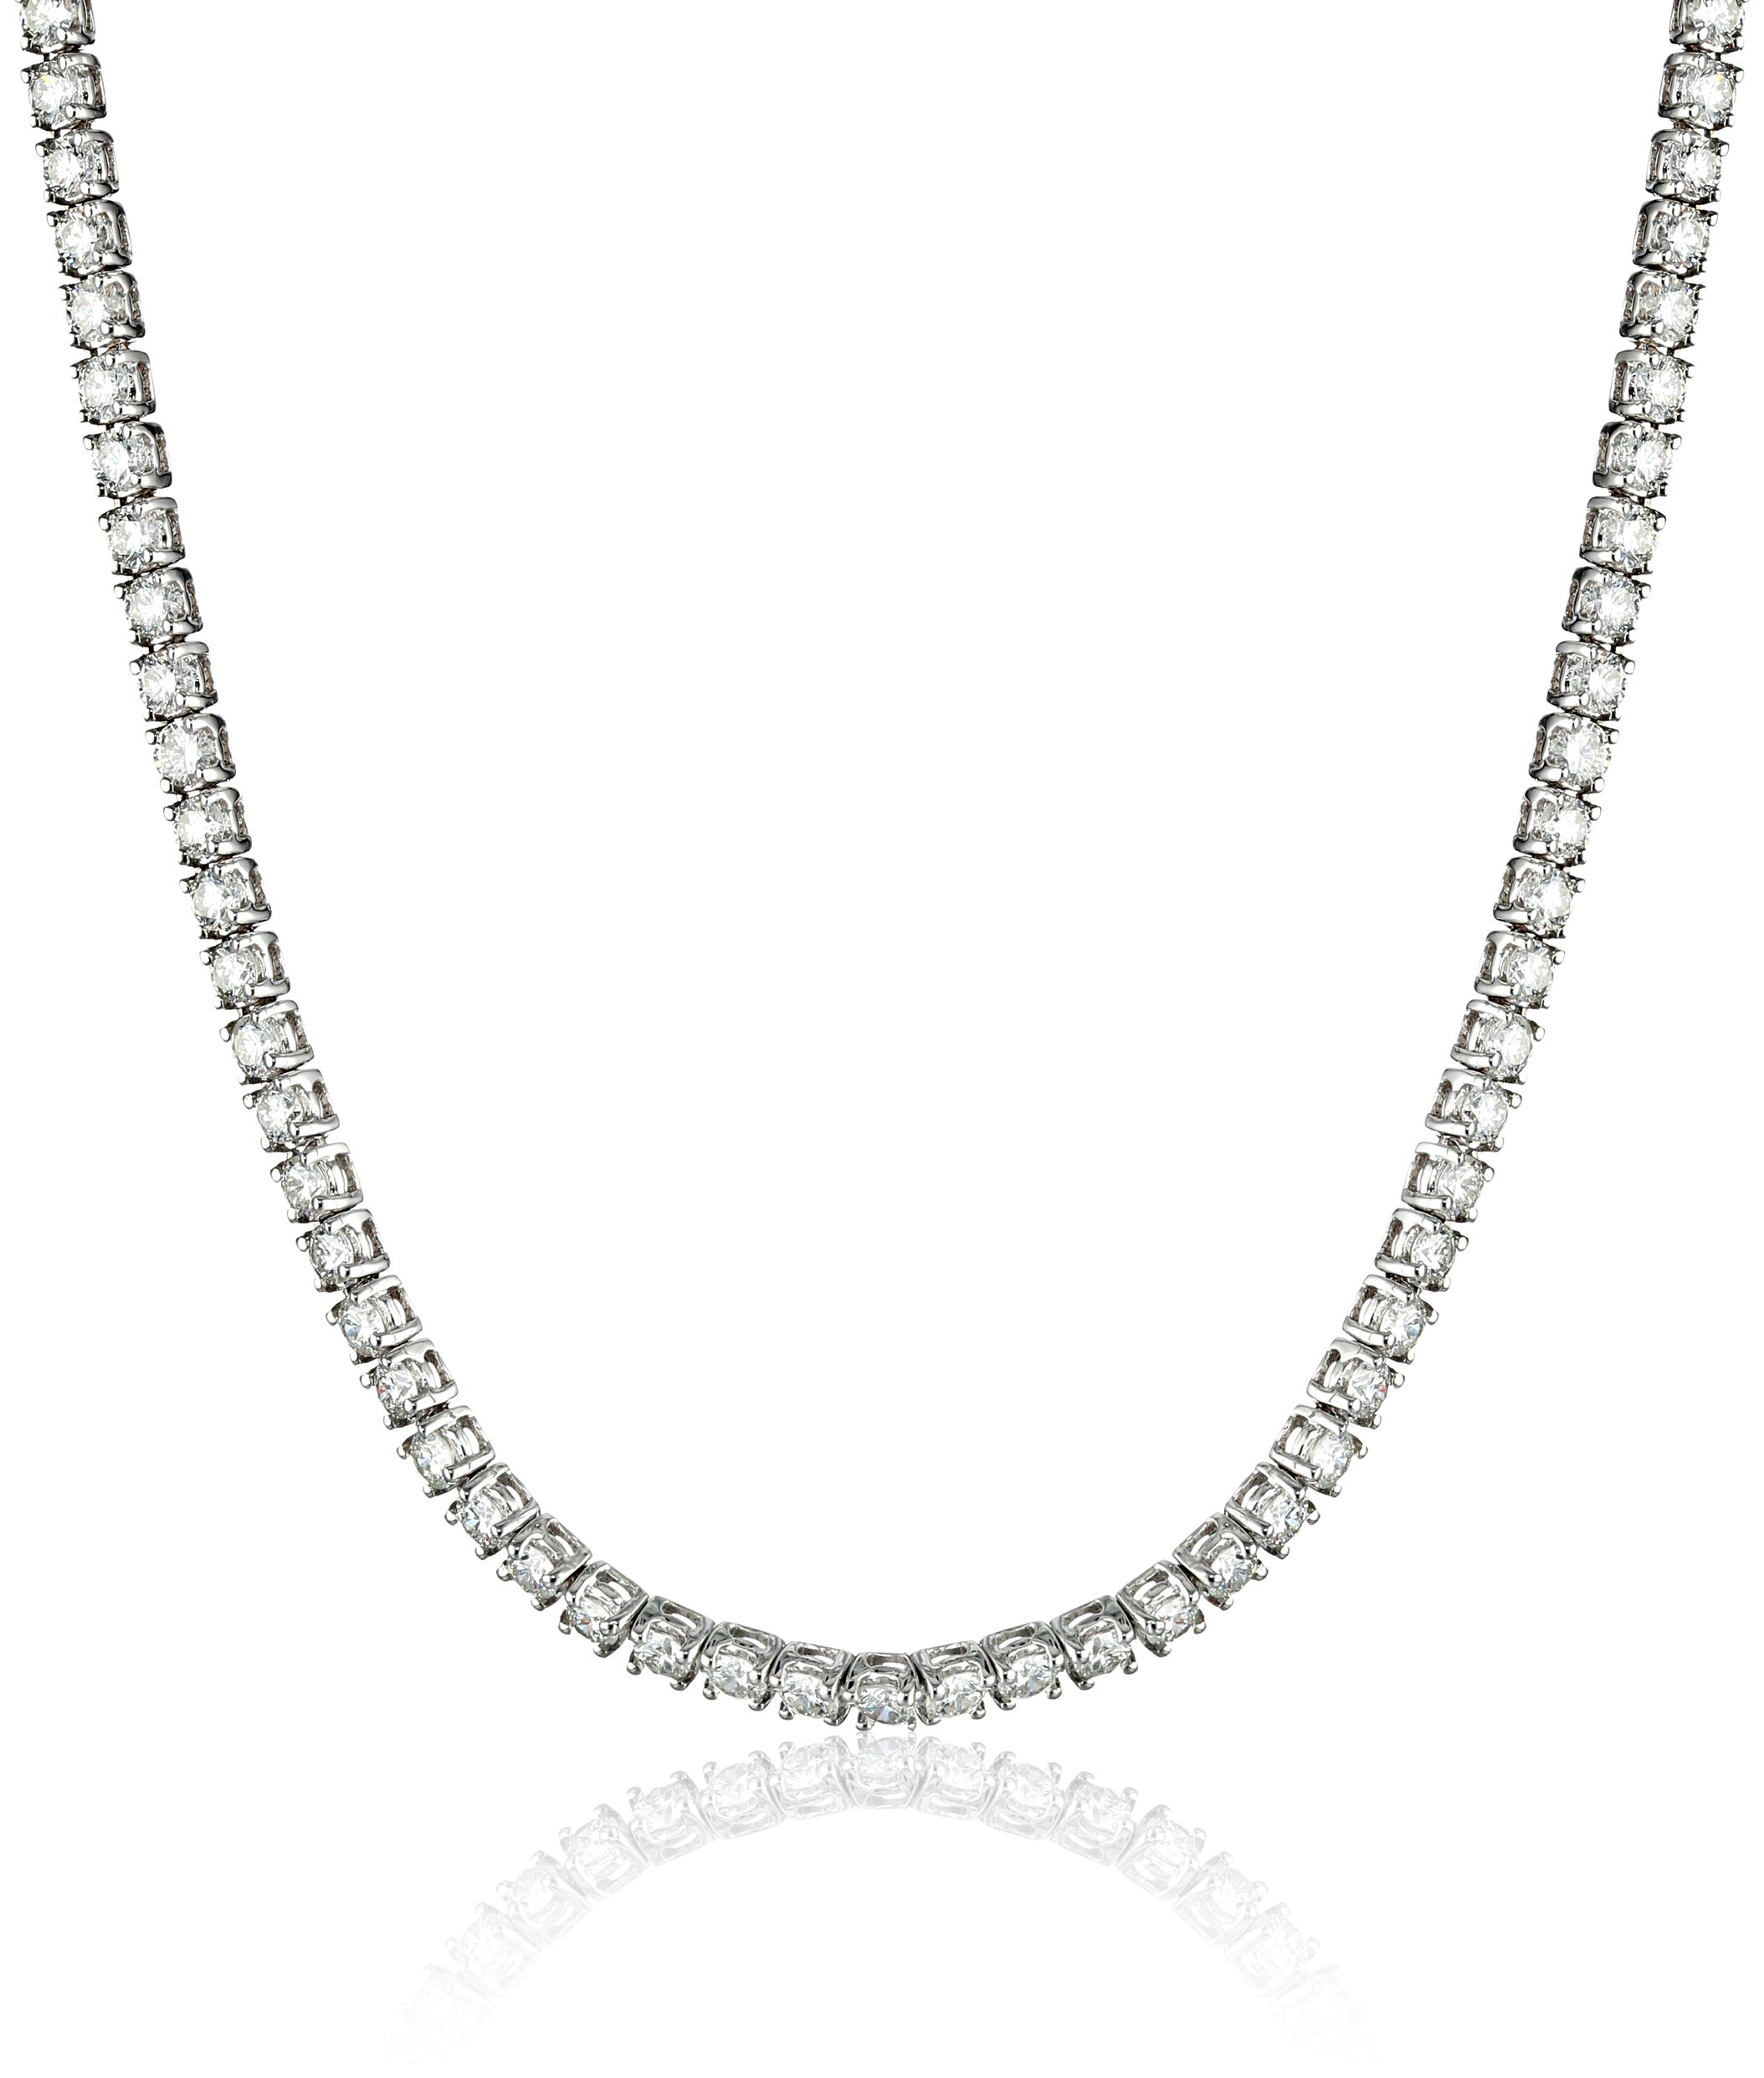 IGI Certified 14K White Gold and Diamond Tennis Necklace (9.00 cttw, H-I Color, I1 Clarity), 17''